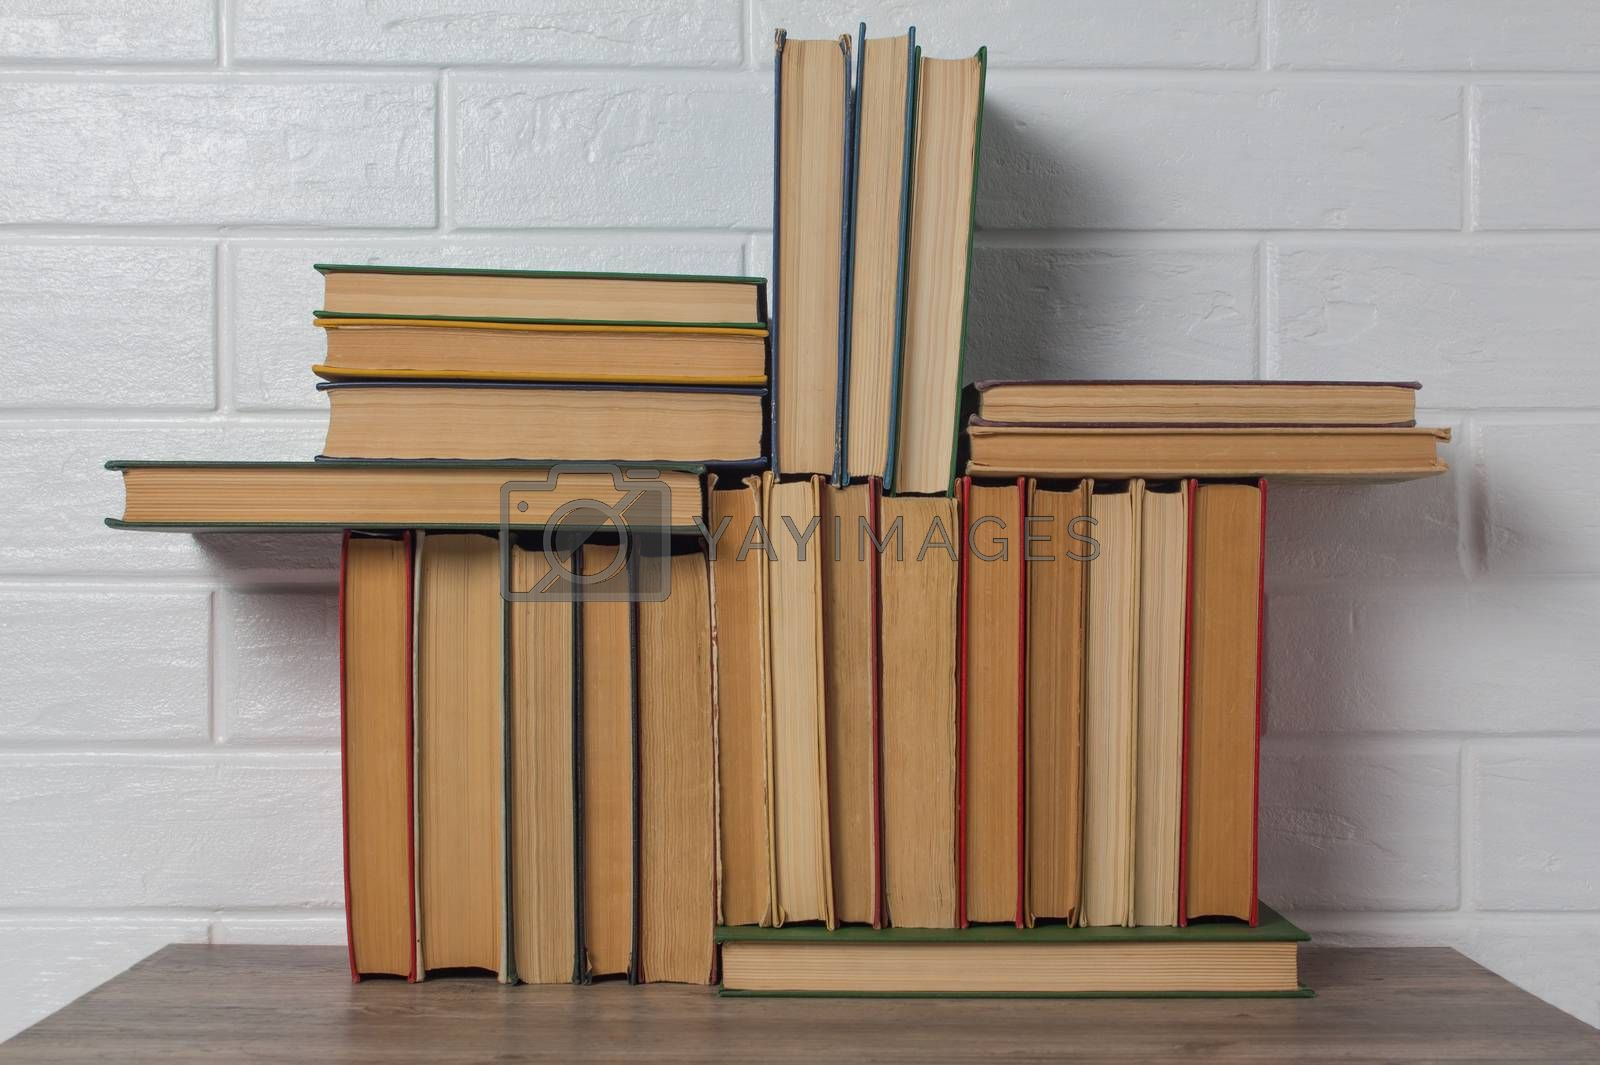 A stack of old books. Bookstore, library, bookshelf. Vintage, retro, antique. Study, education, school, University. Literature, history, science. Books against a white brick wall.